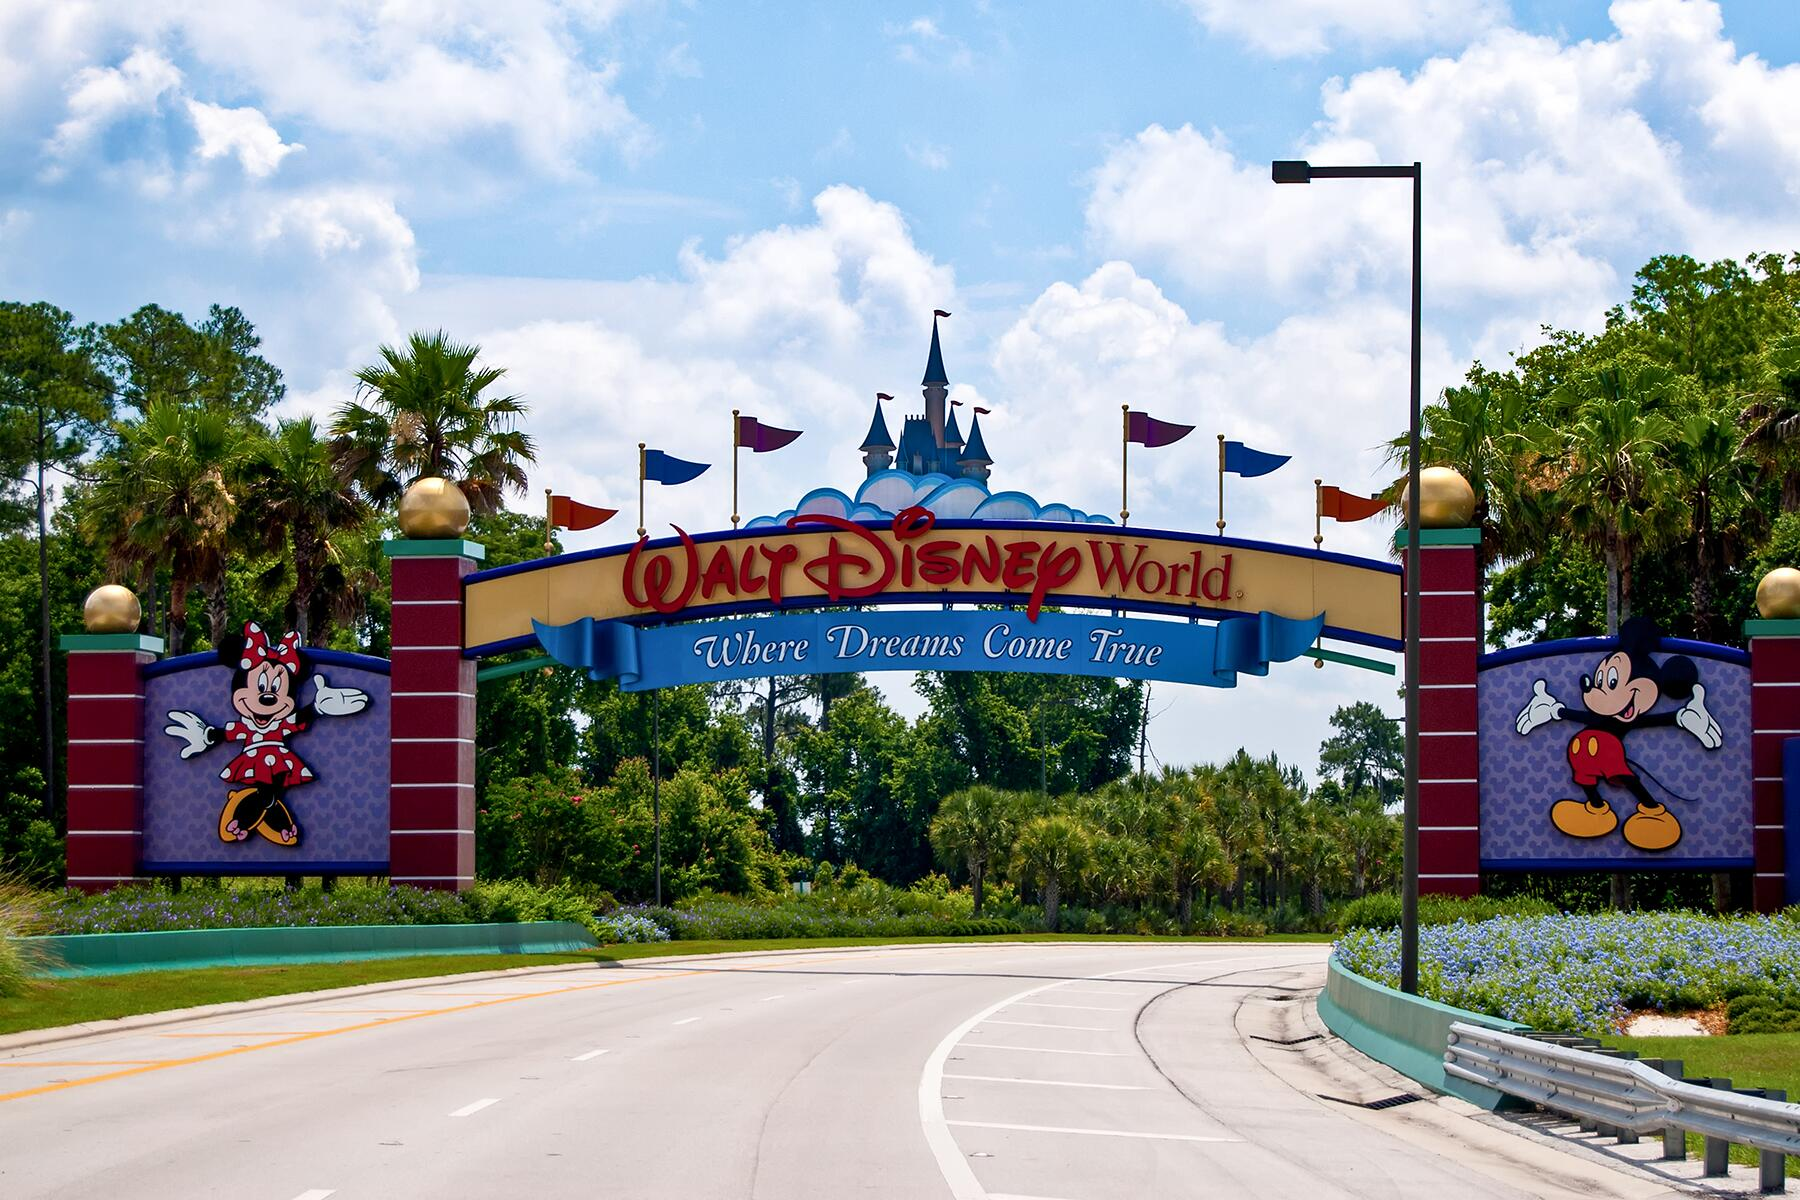 COVID Has Already Complicated Walt Disney World, but Is the NBA Bubble Making It Worse?